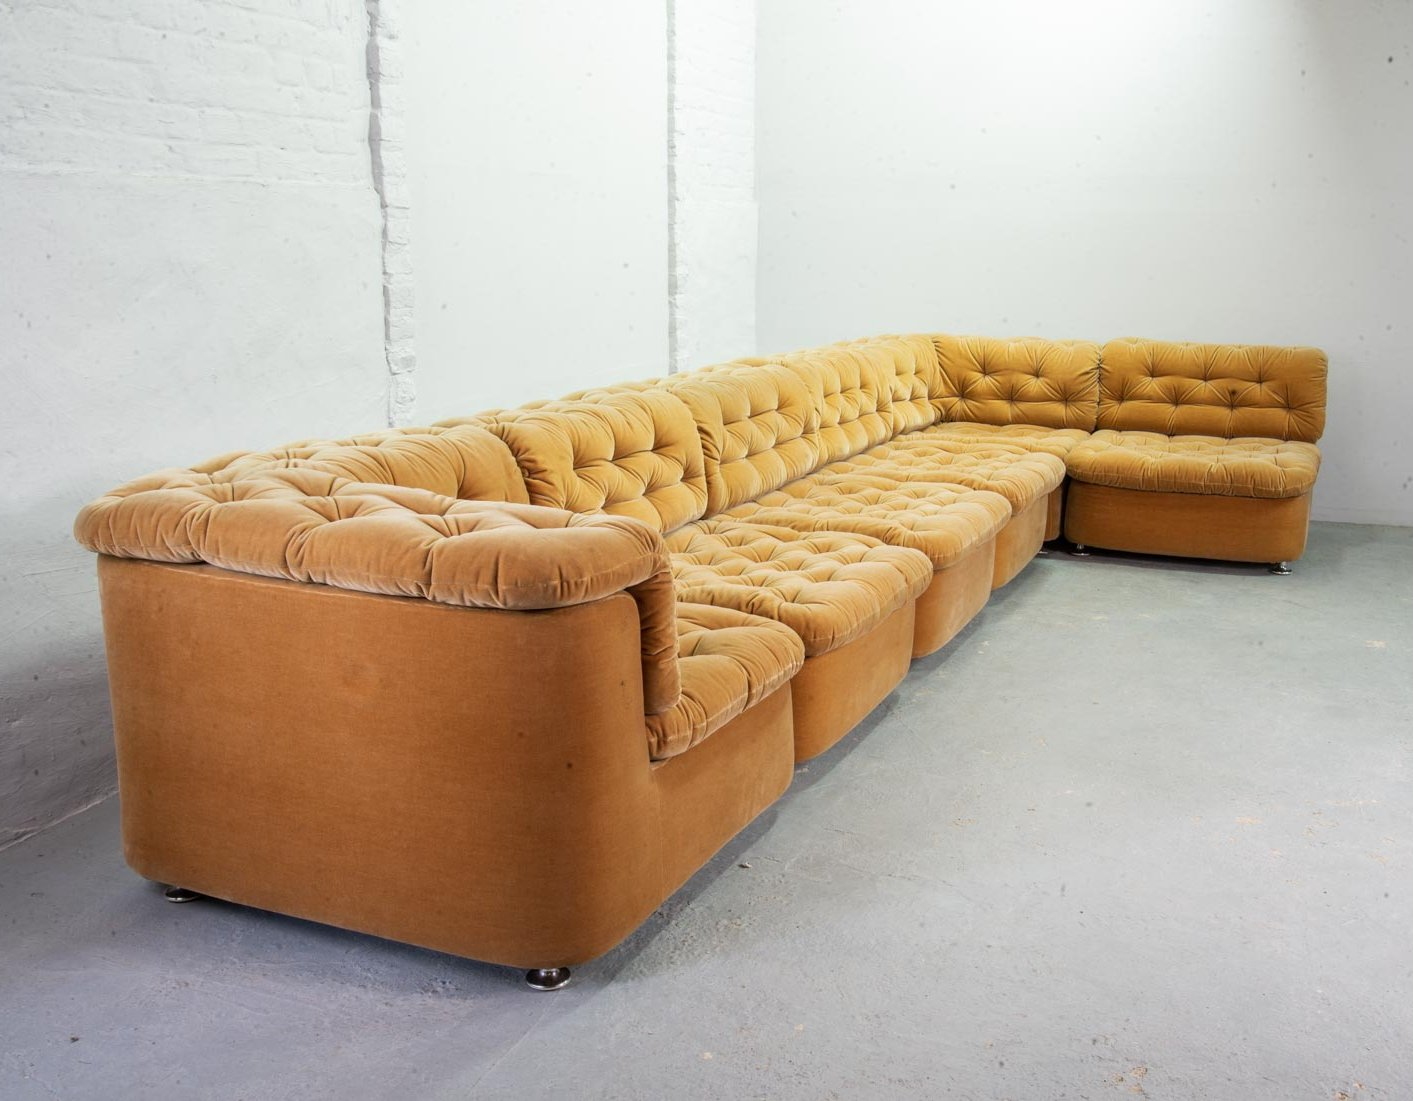 Modular Lounge Sofa In Peach Velvet